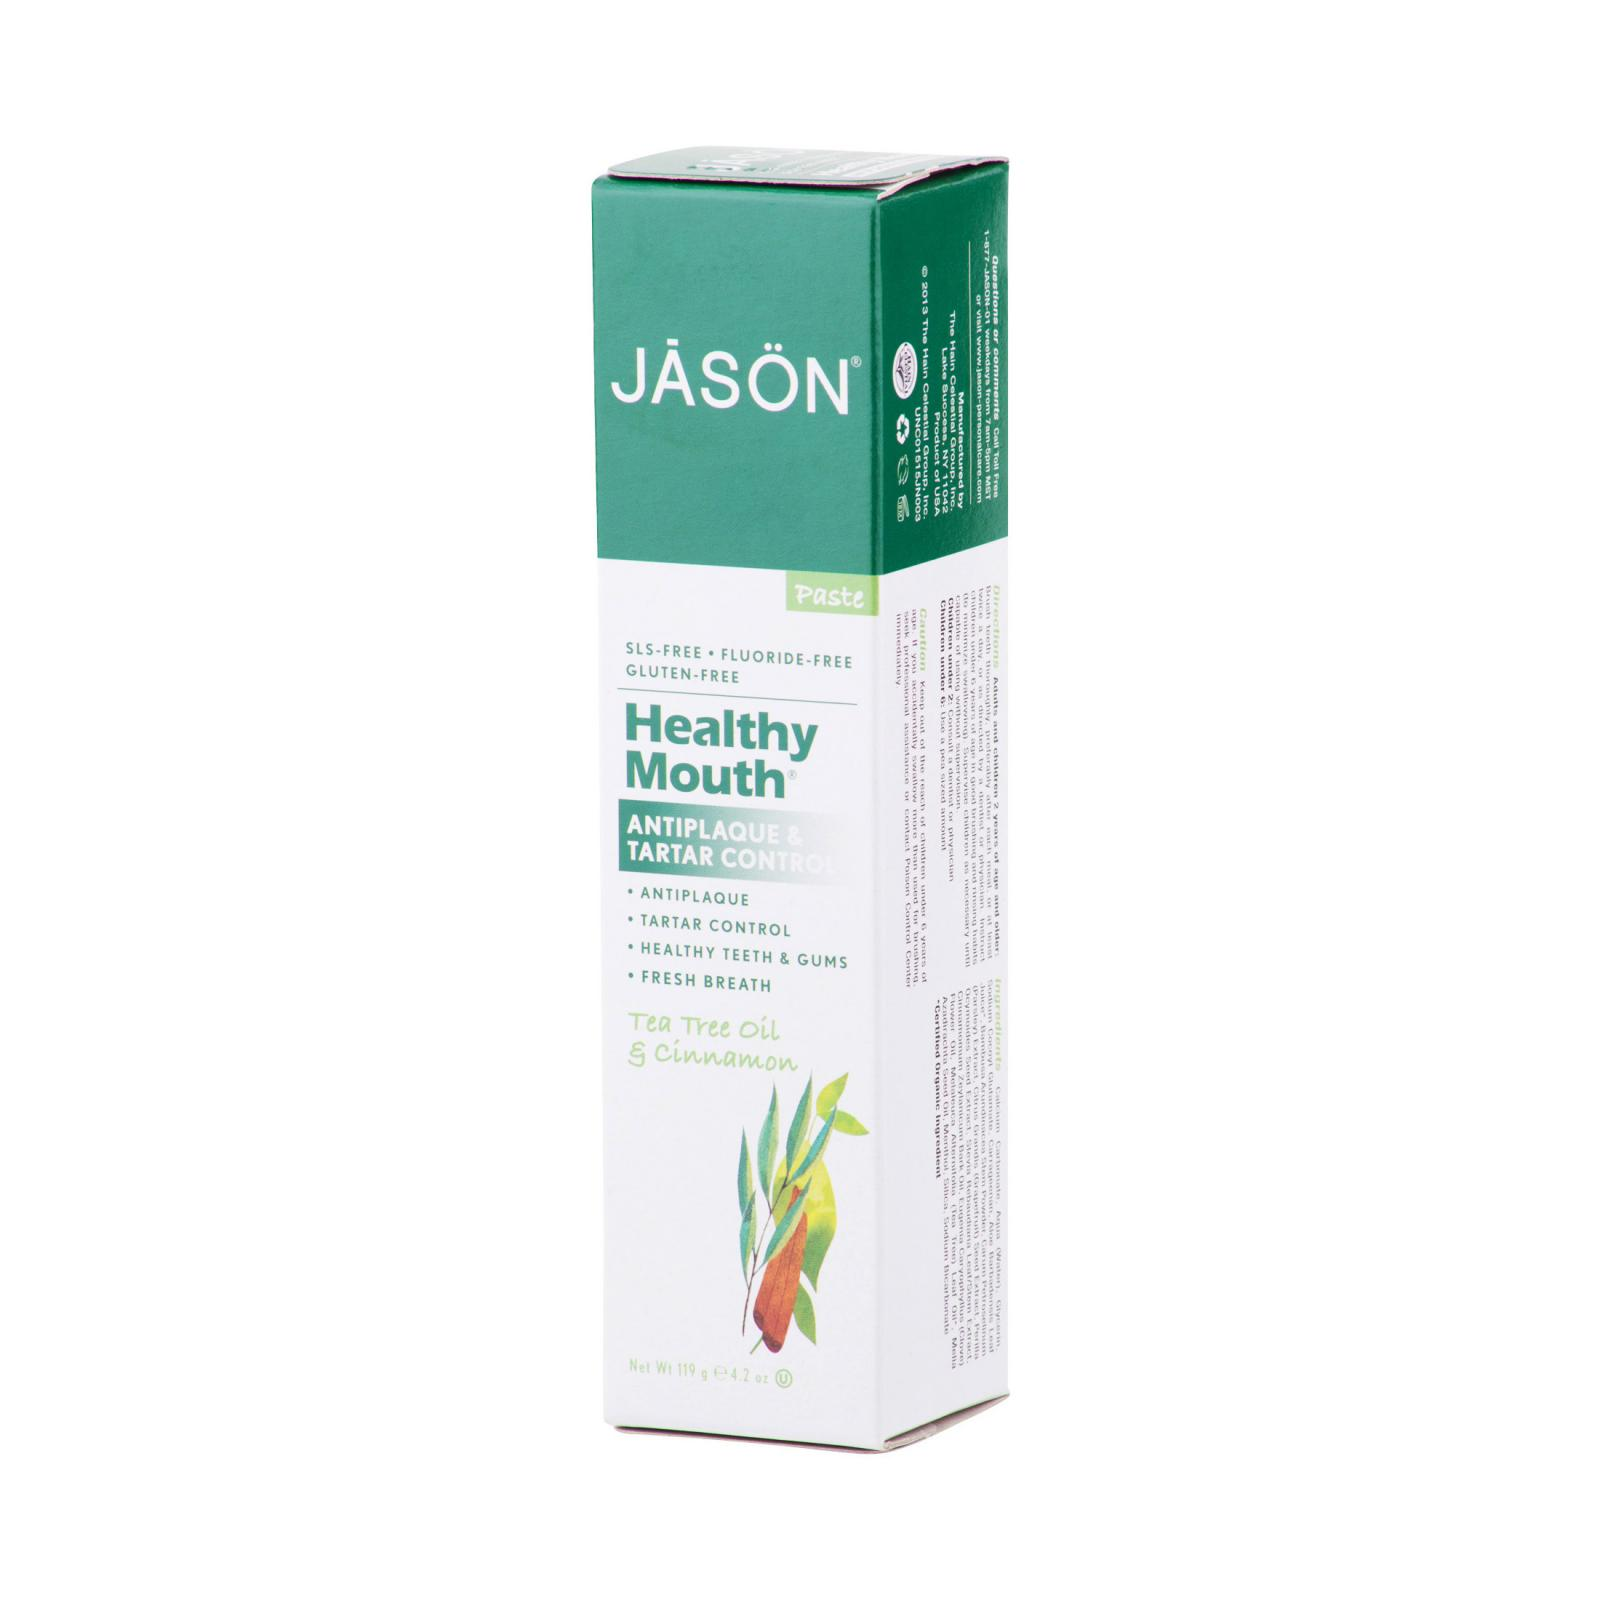 Jason Zubní pasta Healthy Mouth 119 g